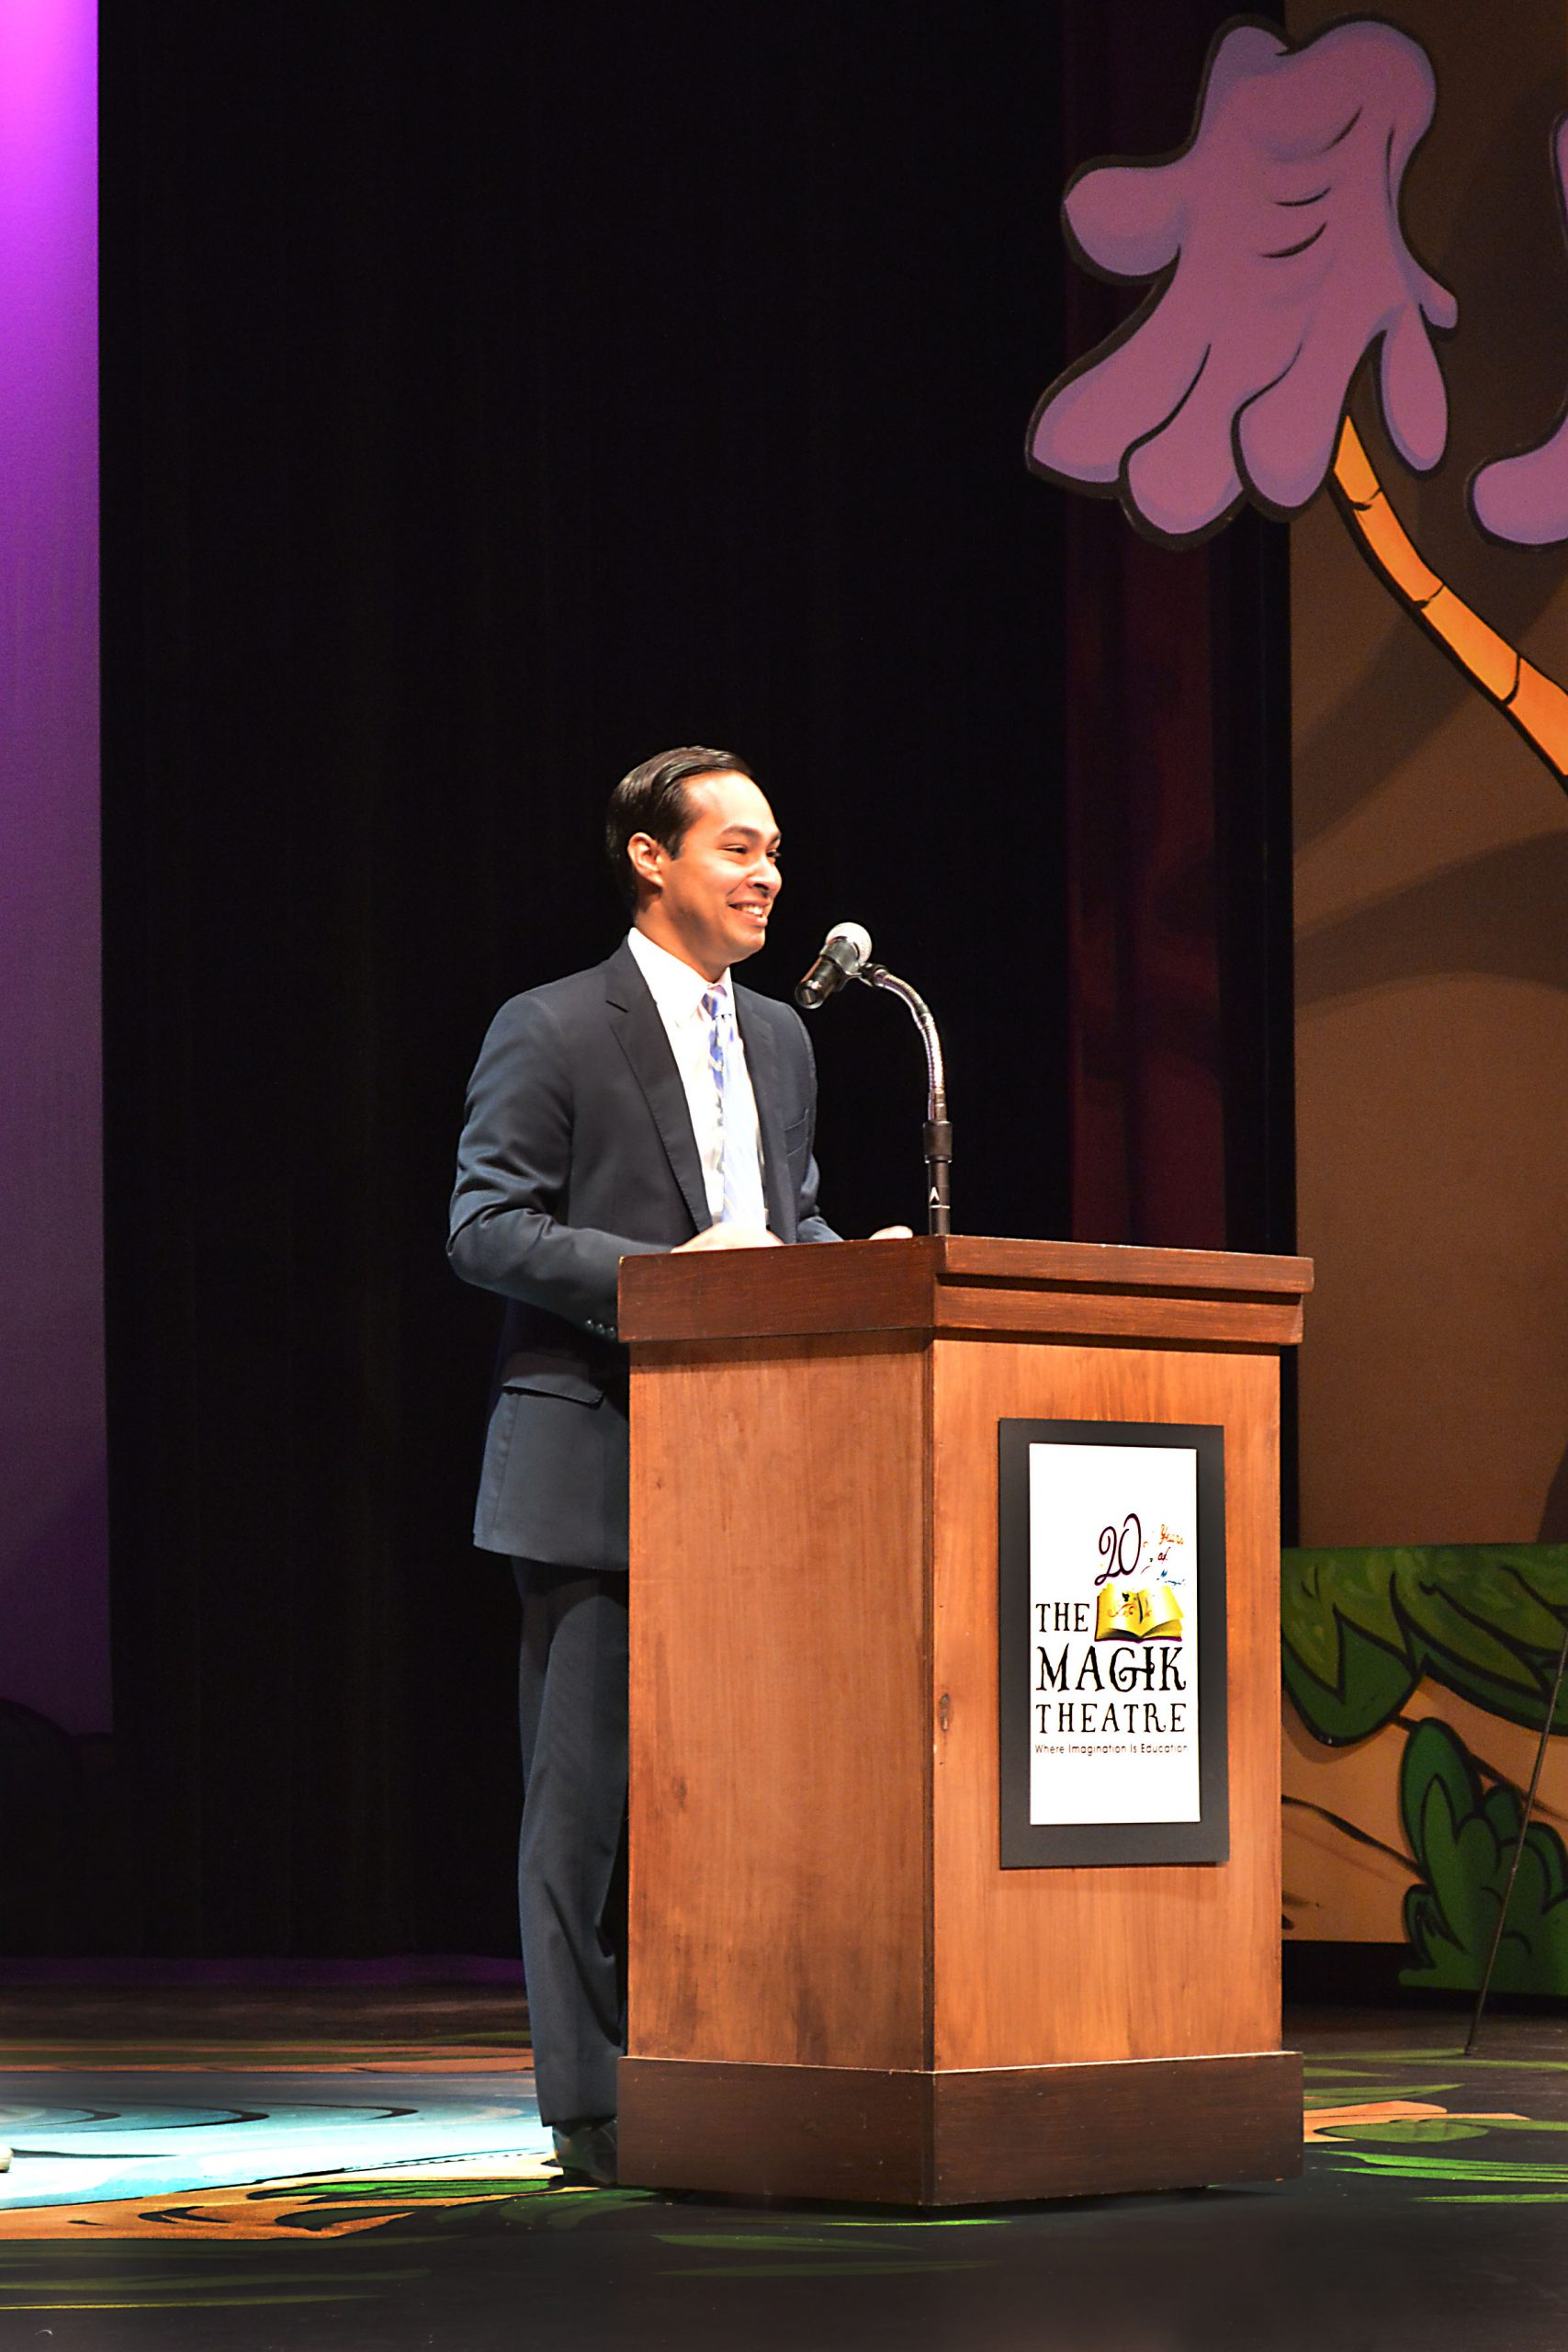 Mayor Julian Castro takes the stage at The Magik Theatre